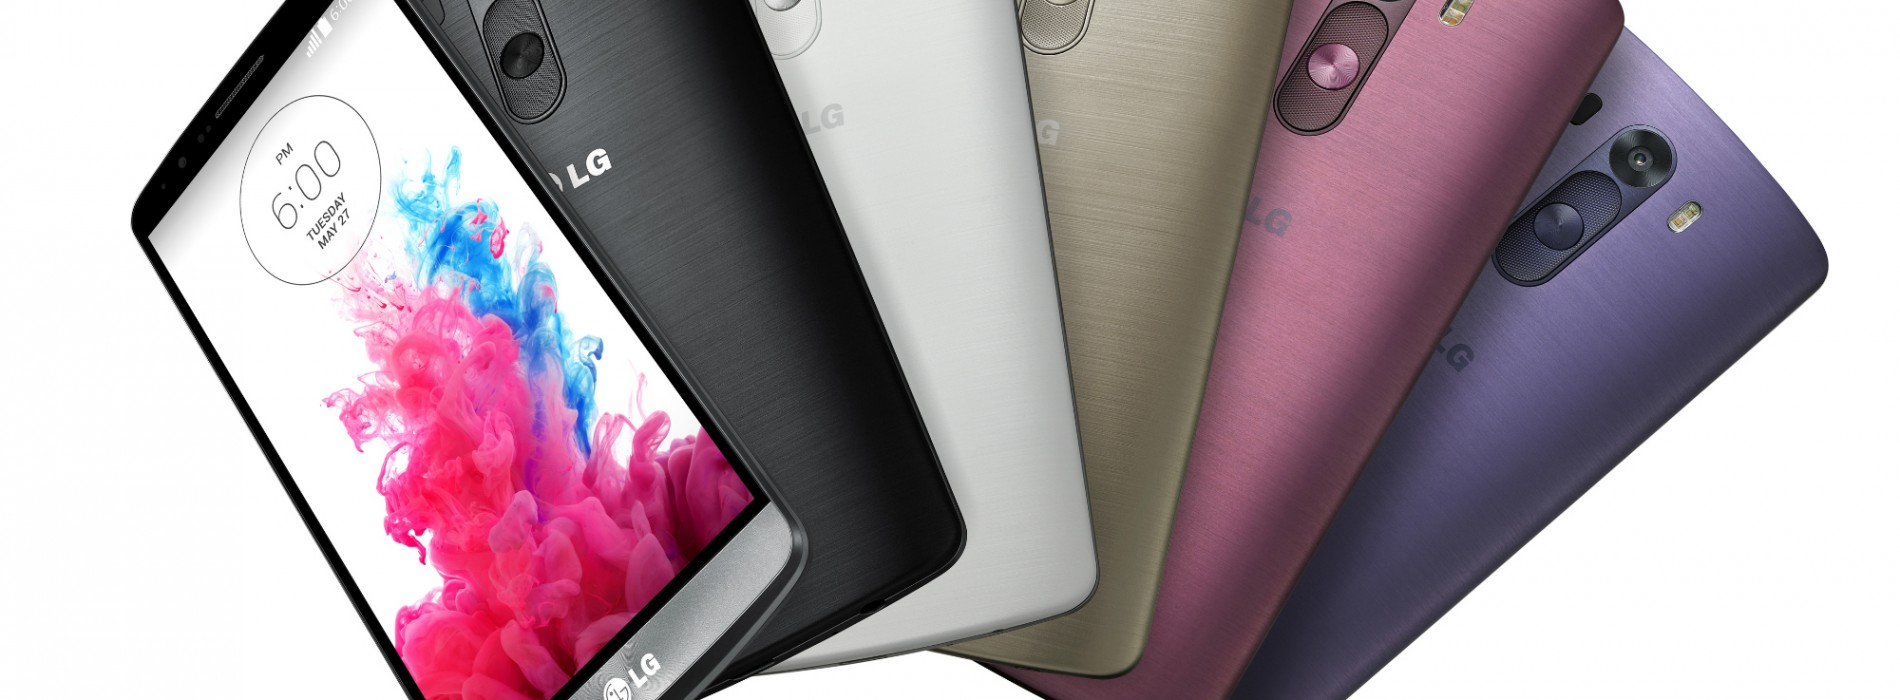 LG announces flagship G3 for summer